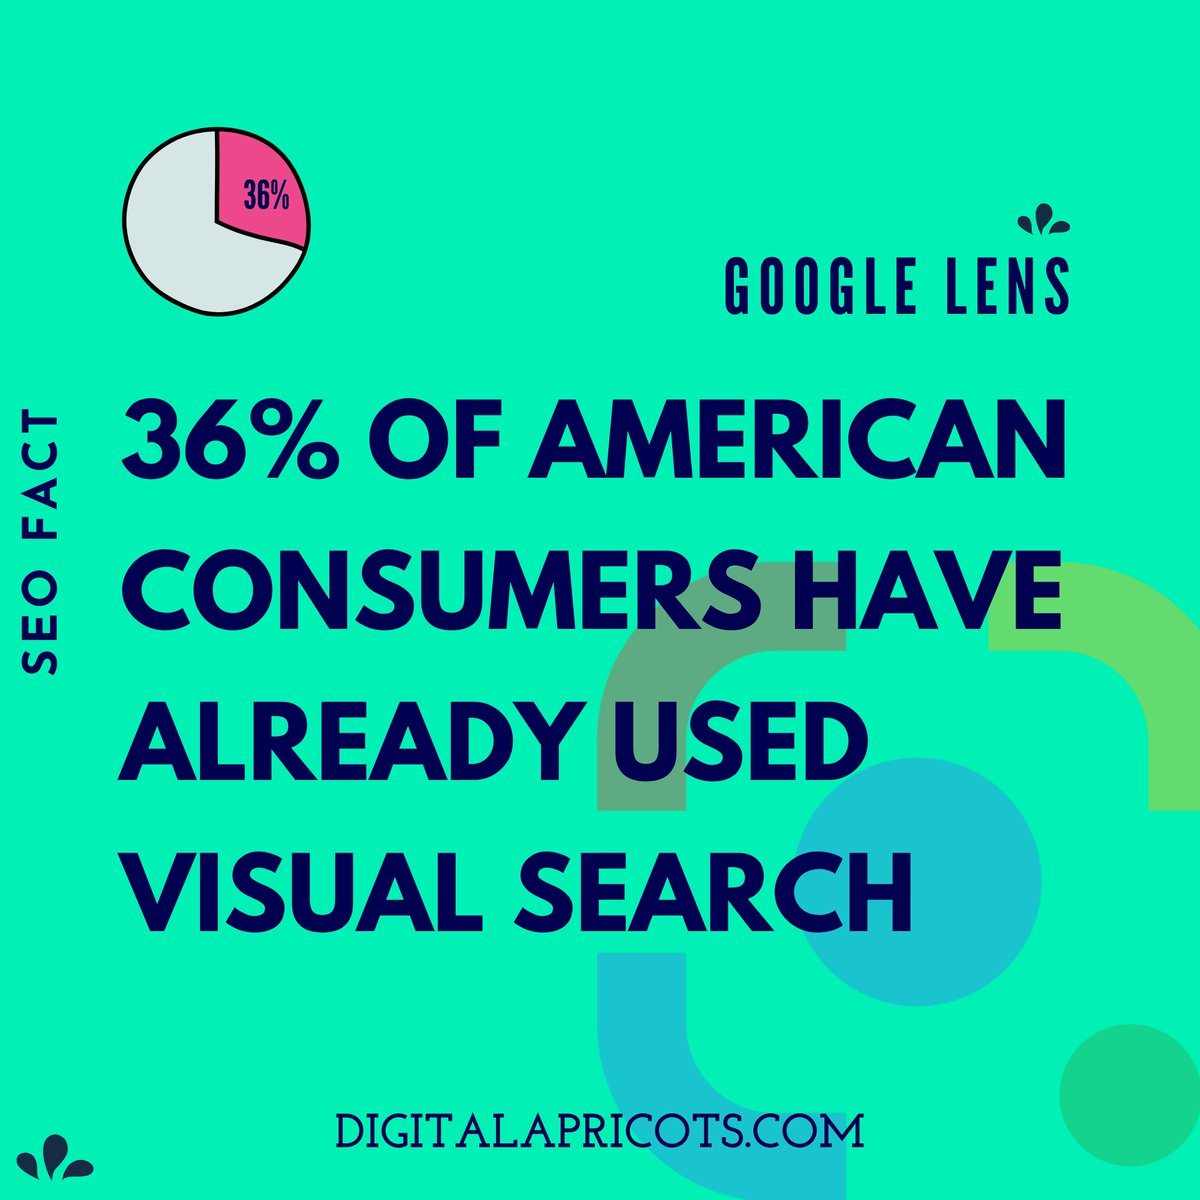 Follow @Digital Apricots  Fact said, 36% of American consumers have already used visual search. Google lens is going to be the next search algorithm.  #fact #facts #search #searchengineoptimisation #googlelens #visualresearch #FridayMotivation #FridayThoughts #FridayWithMCSoobin